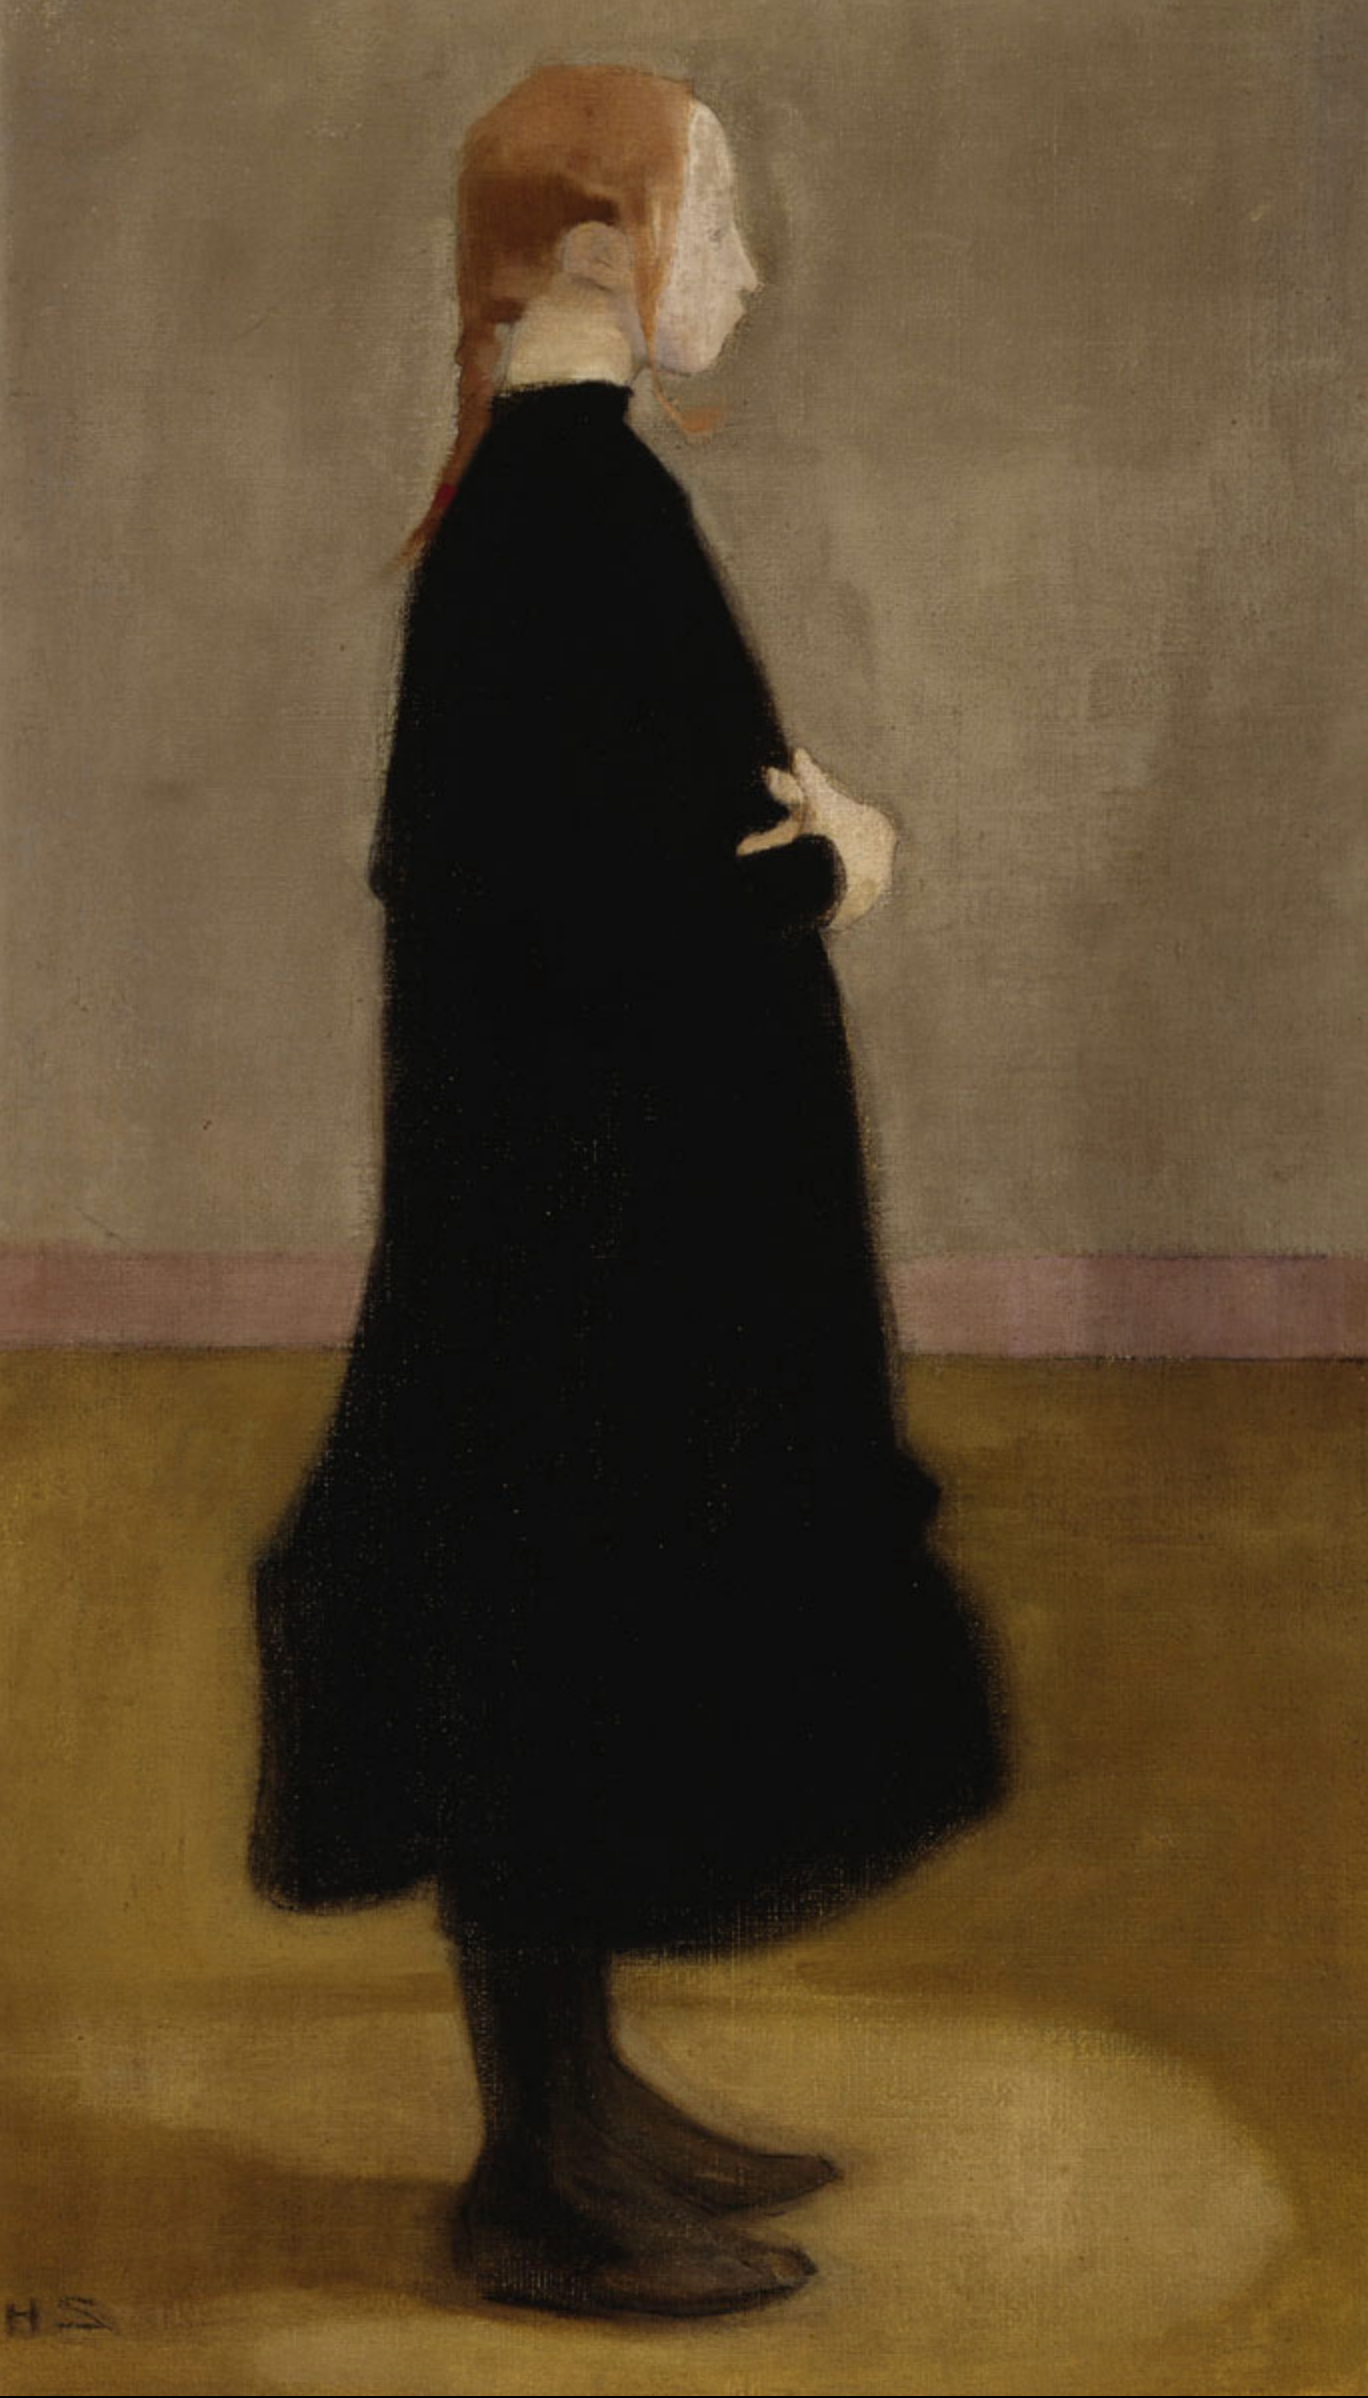 Helene Schjerfbeck - The School Girl II (1908)